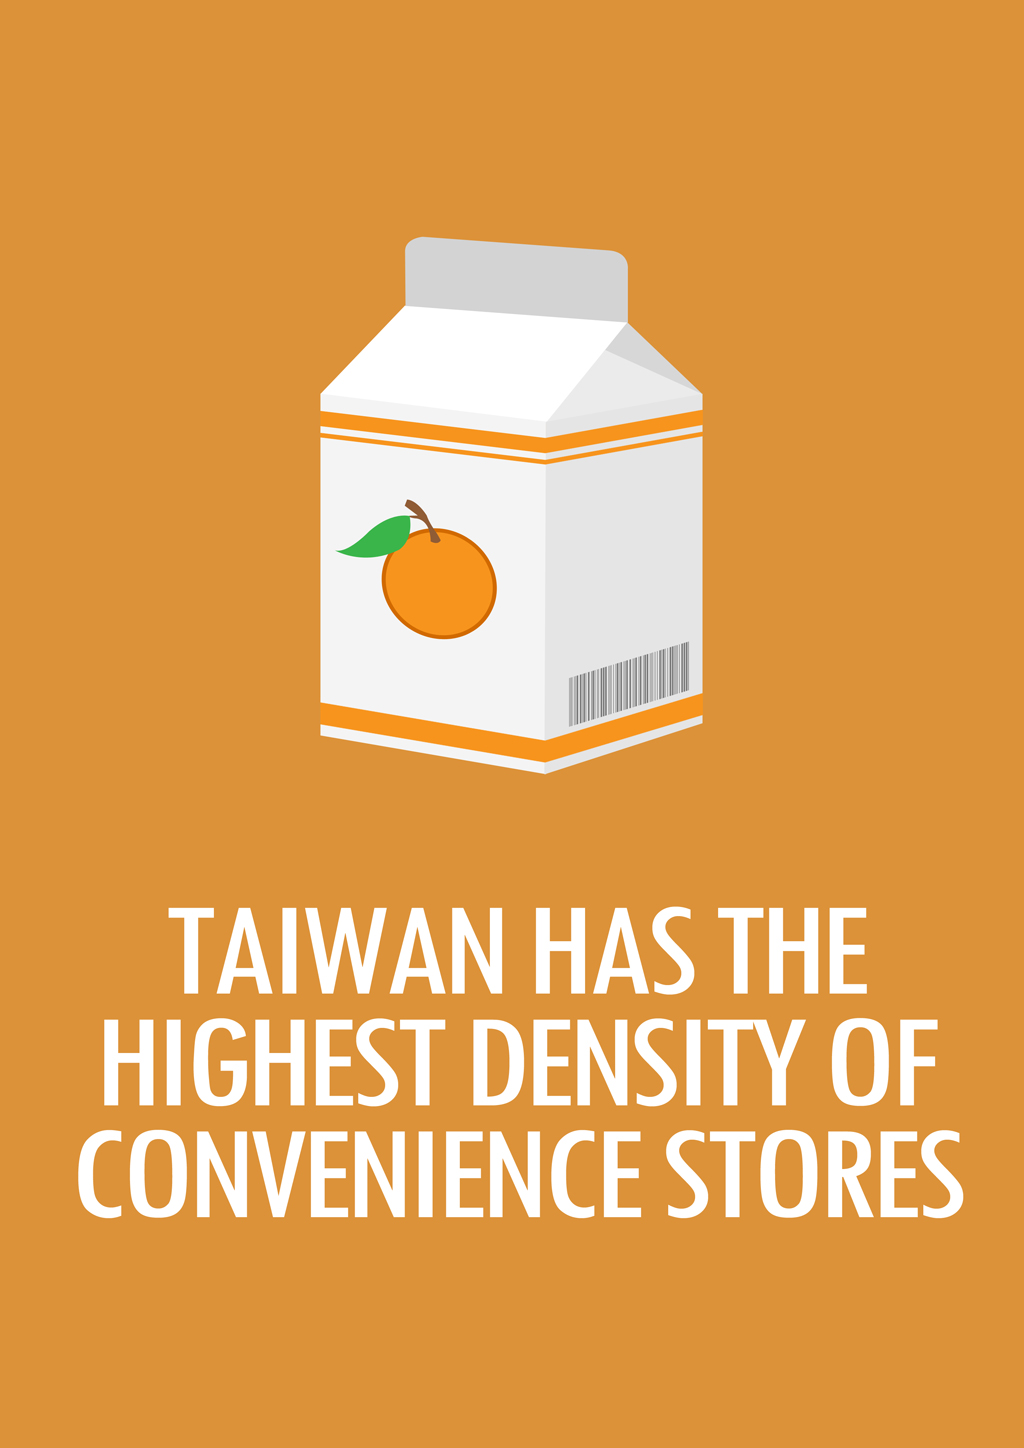 Tawain Highest Density Convenience Stores